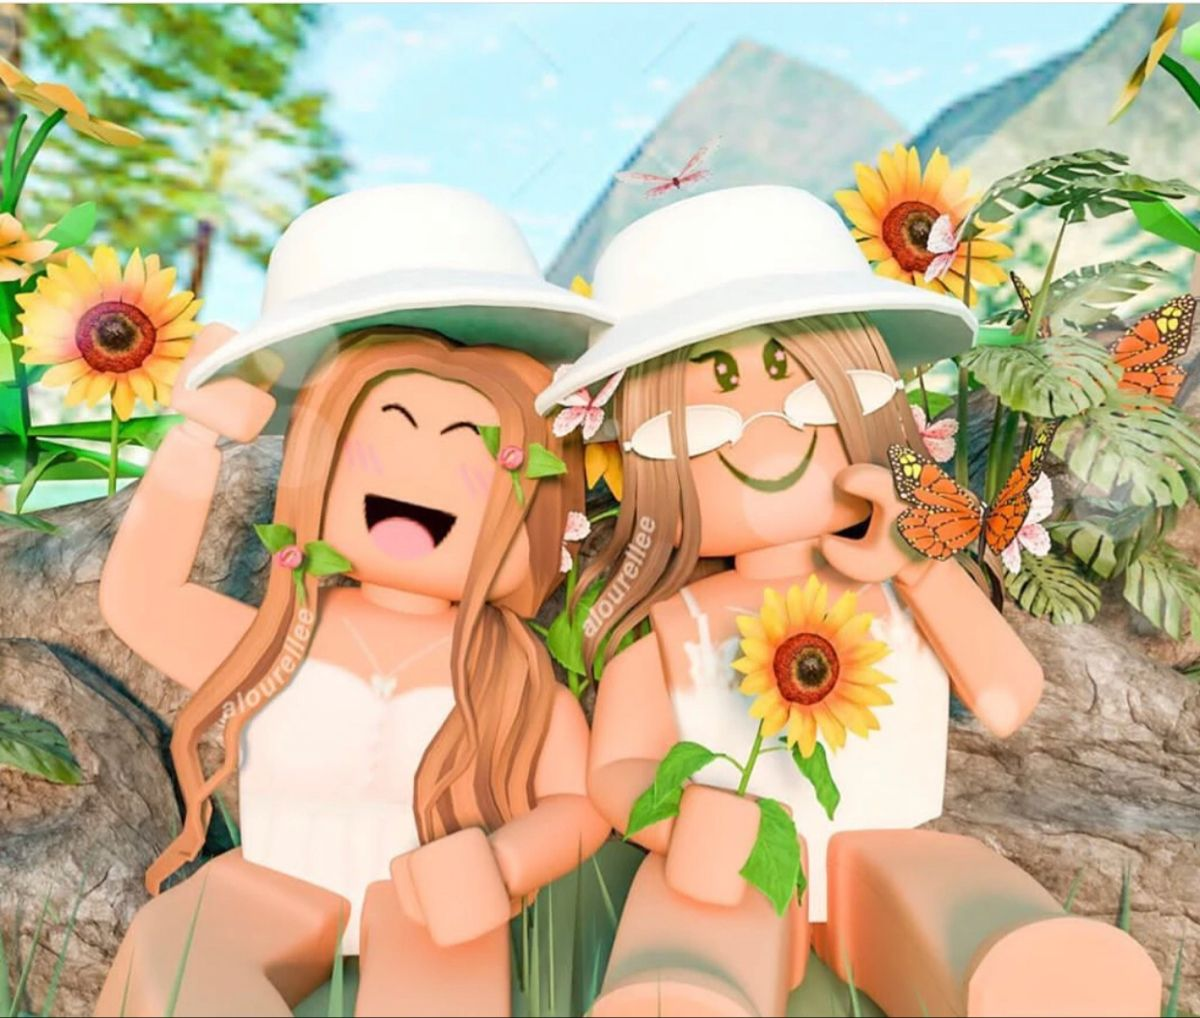 Pin By Siimplyvintage On Gfx 3 In 2020 Roblox Pictures Roblox Cute Profile Pictures